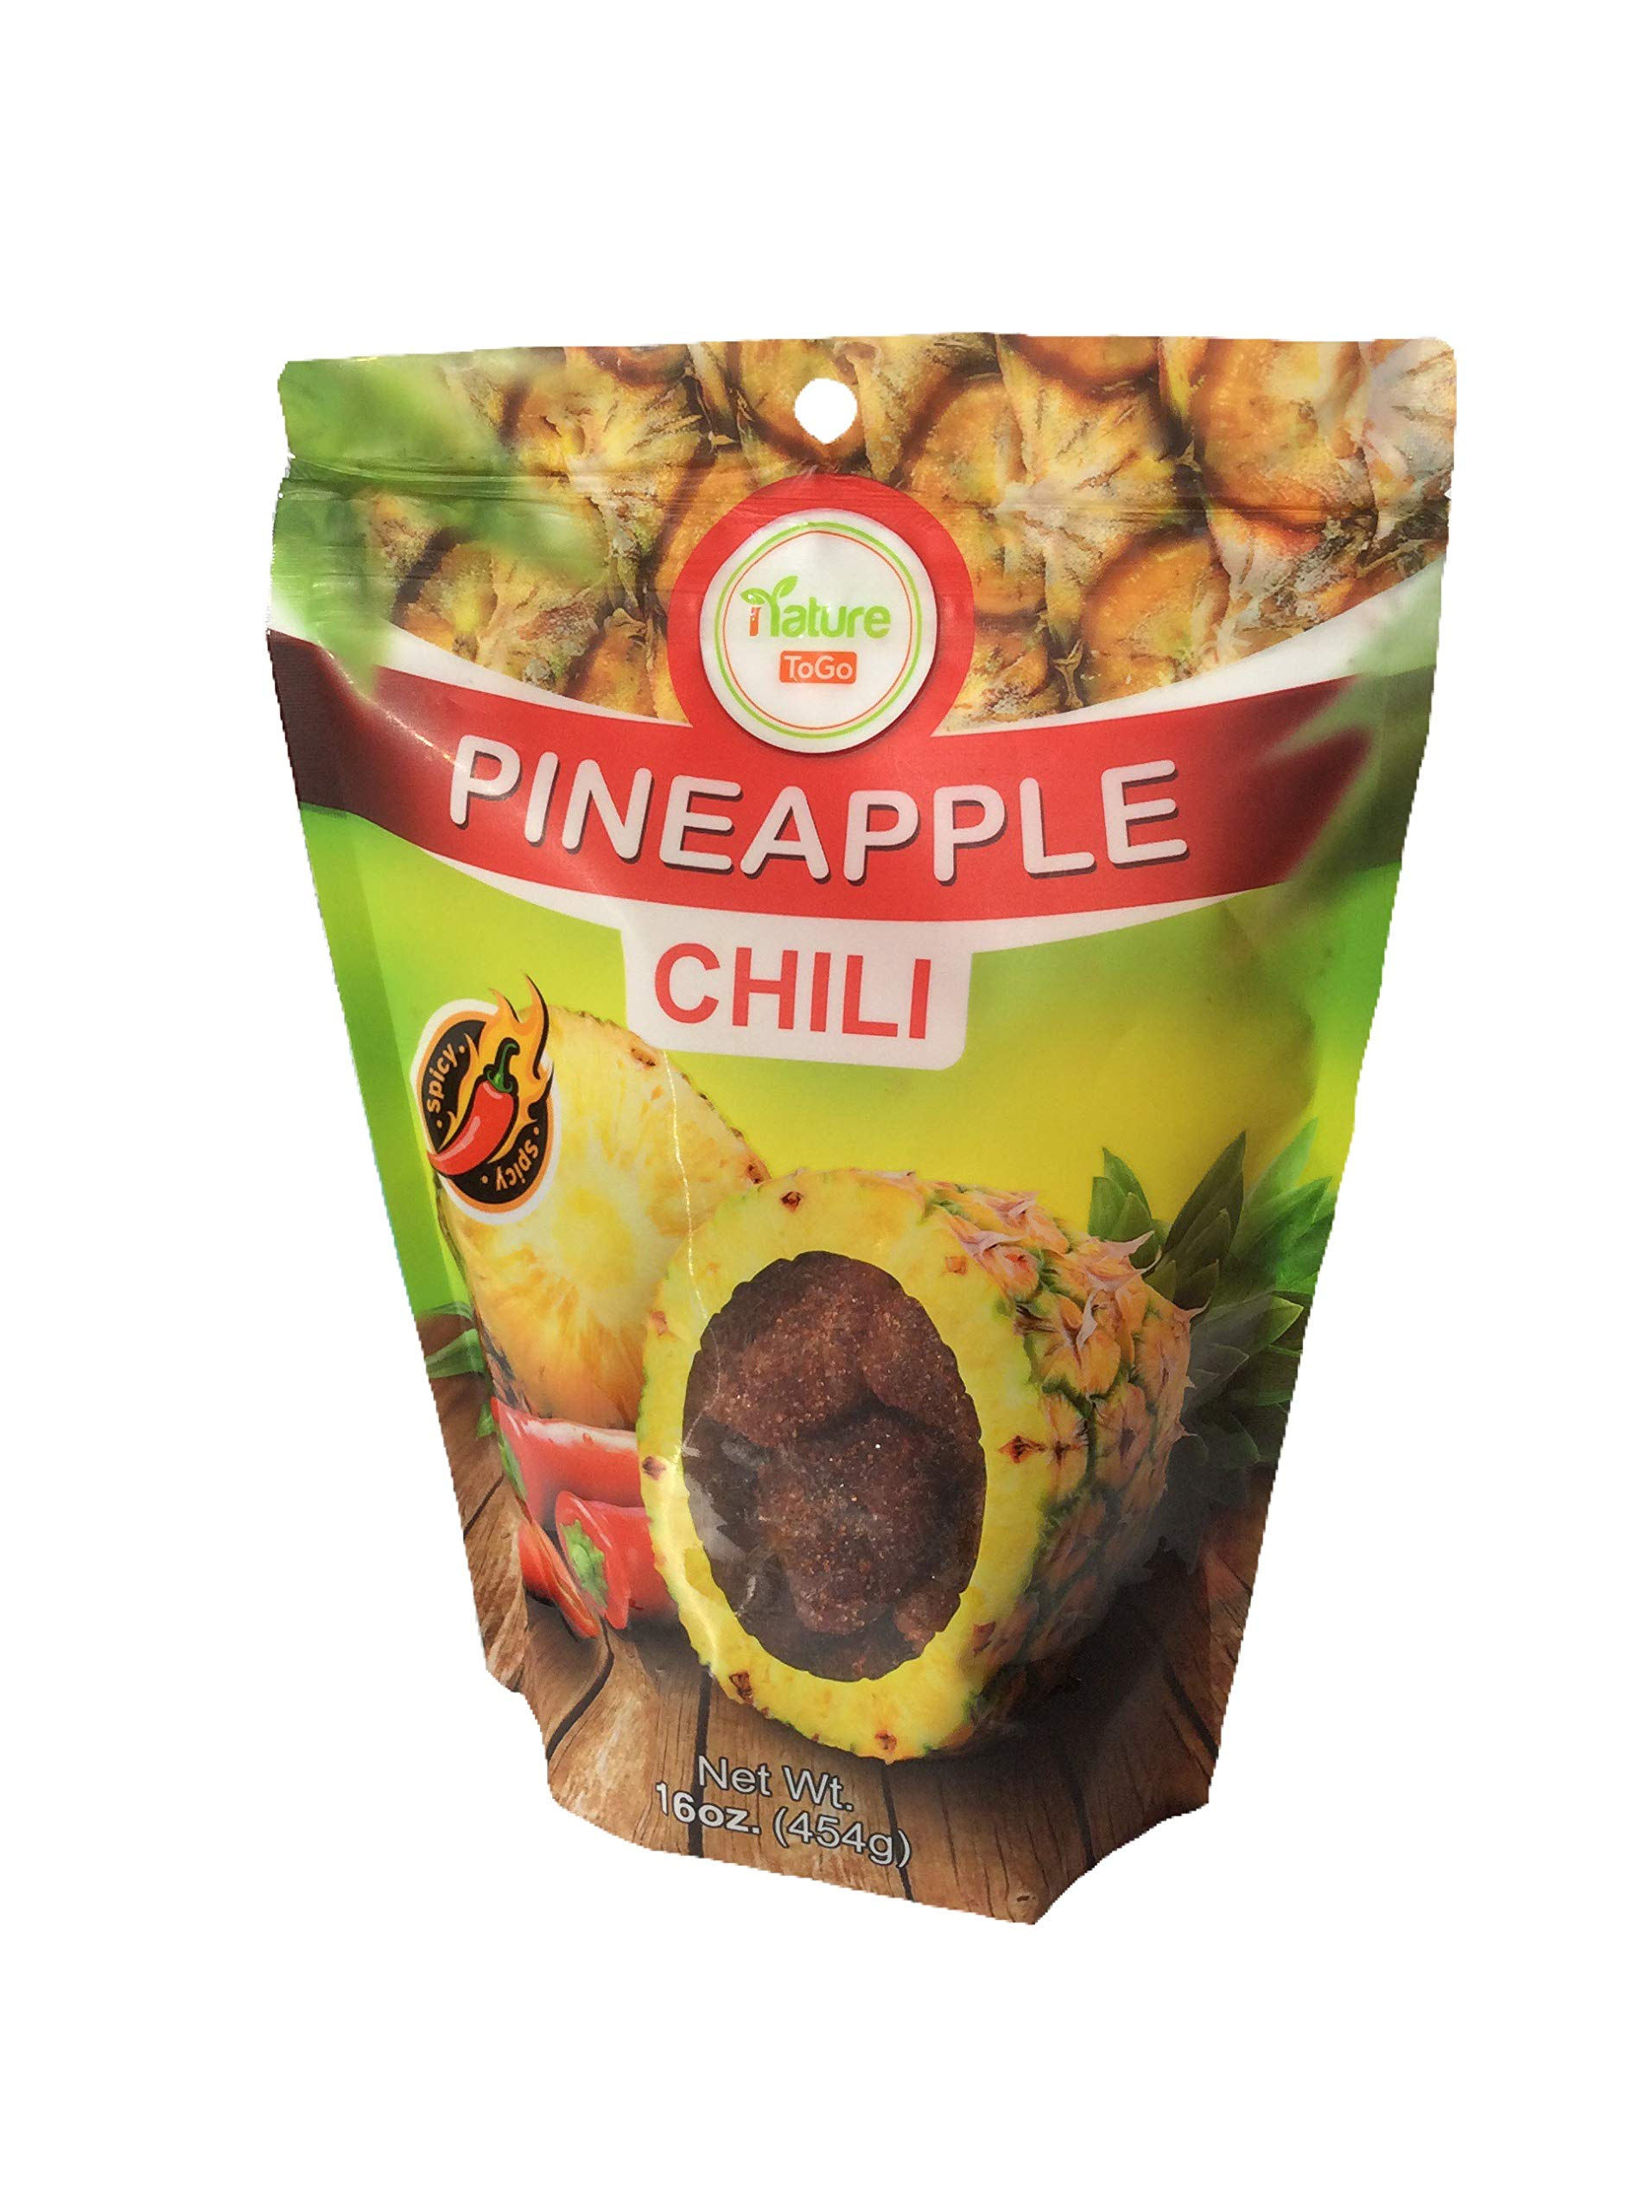 Nature ToGo Pineapple Chili Tidbits, Net Wt 16 oz, excellent source of dietary fiber by Nature To Go